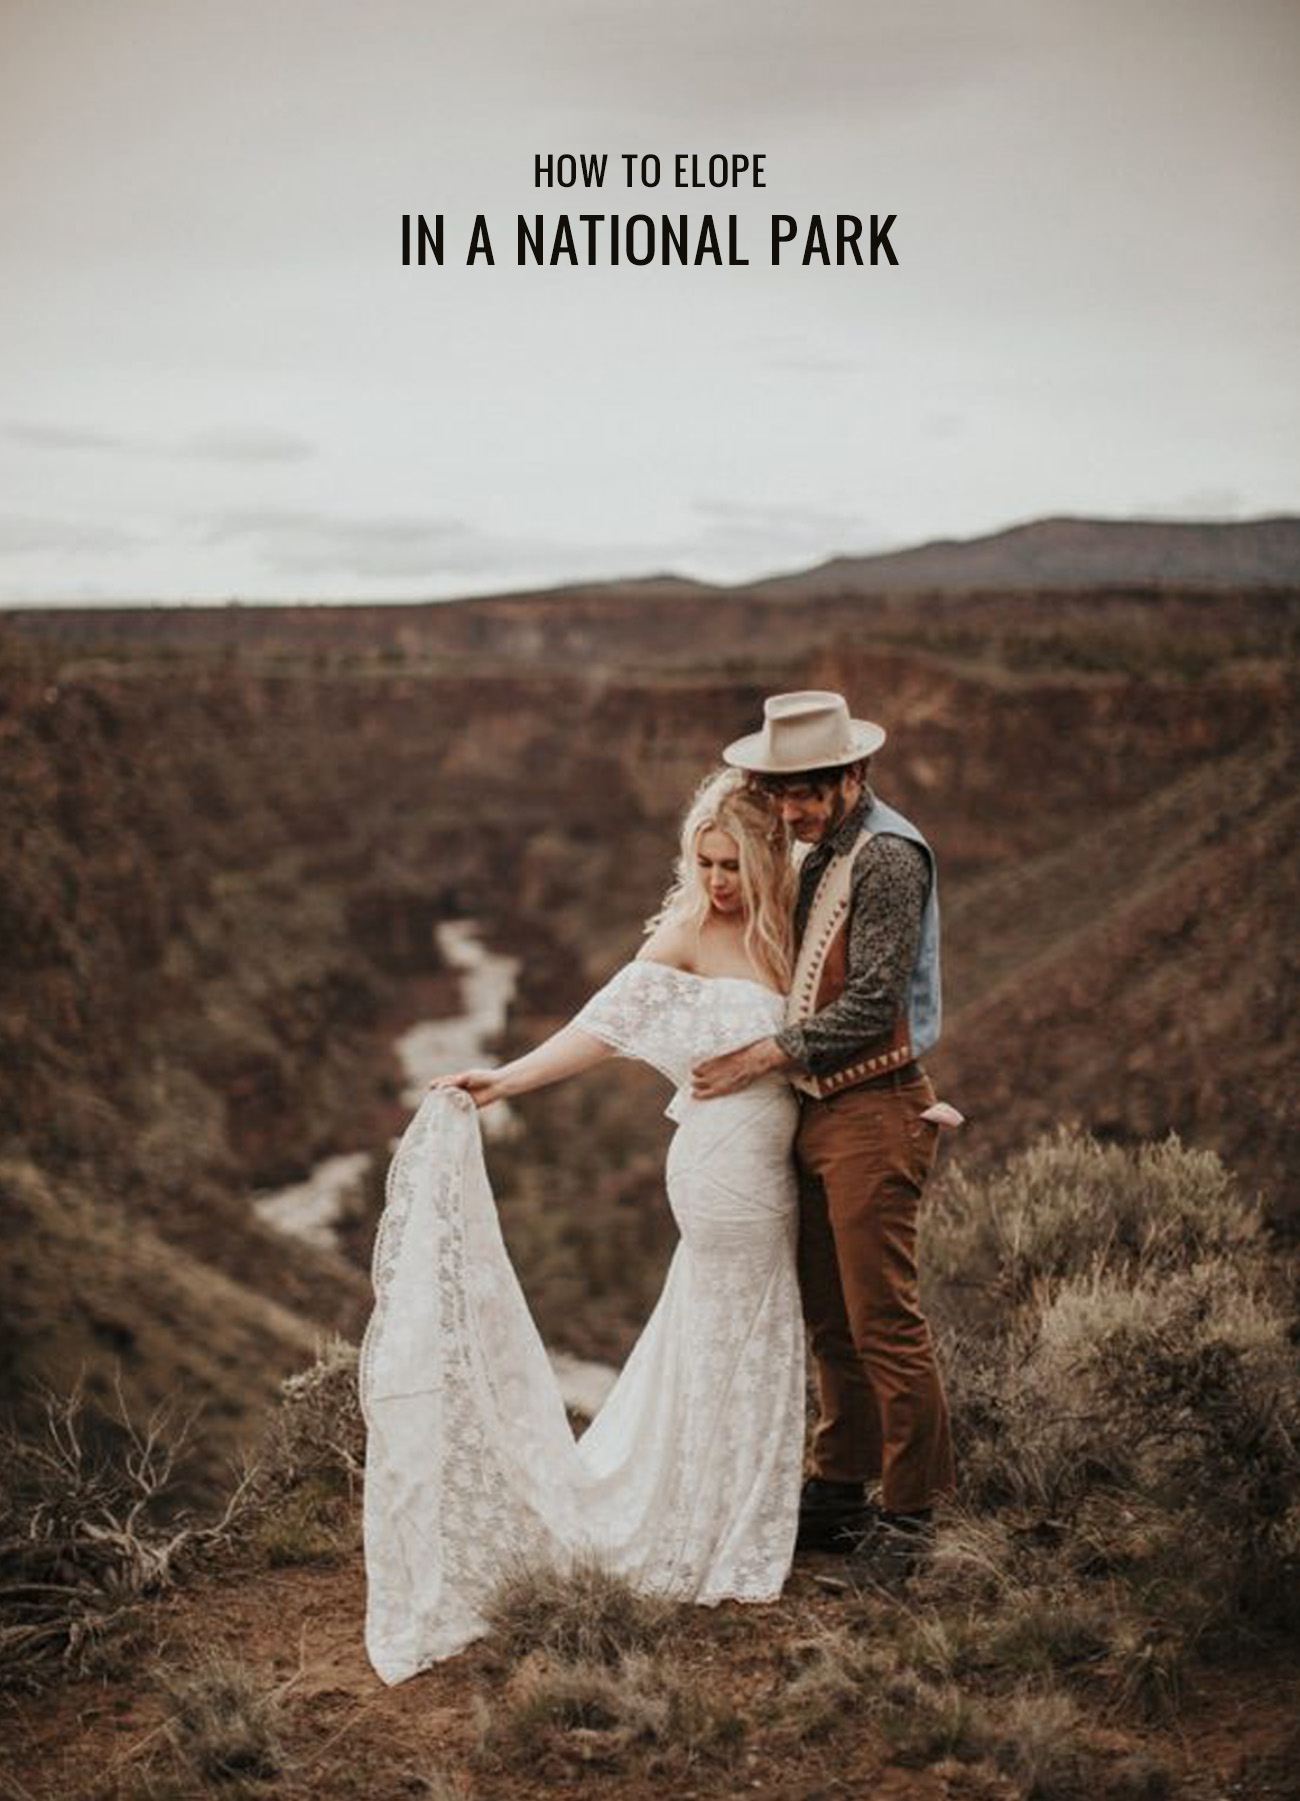 51817e056f5d How to Elope in a National Park - Green Wedding Shoes